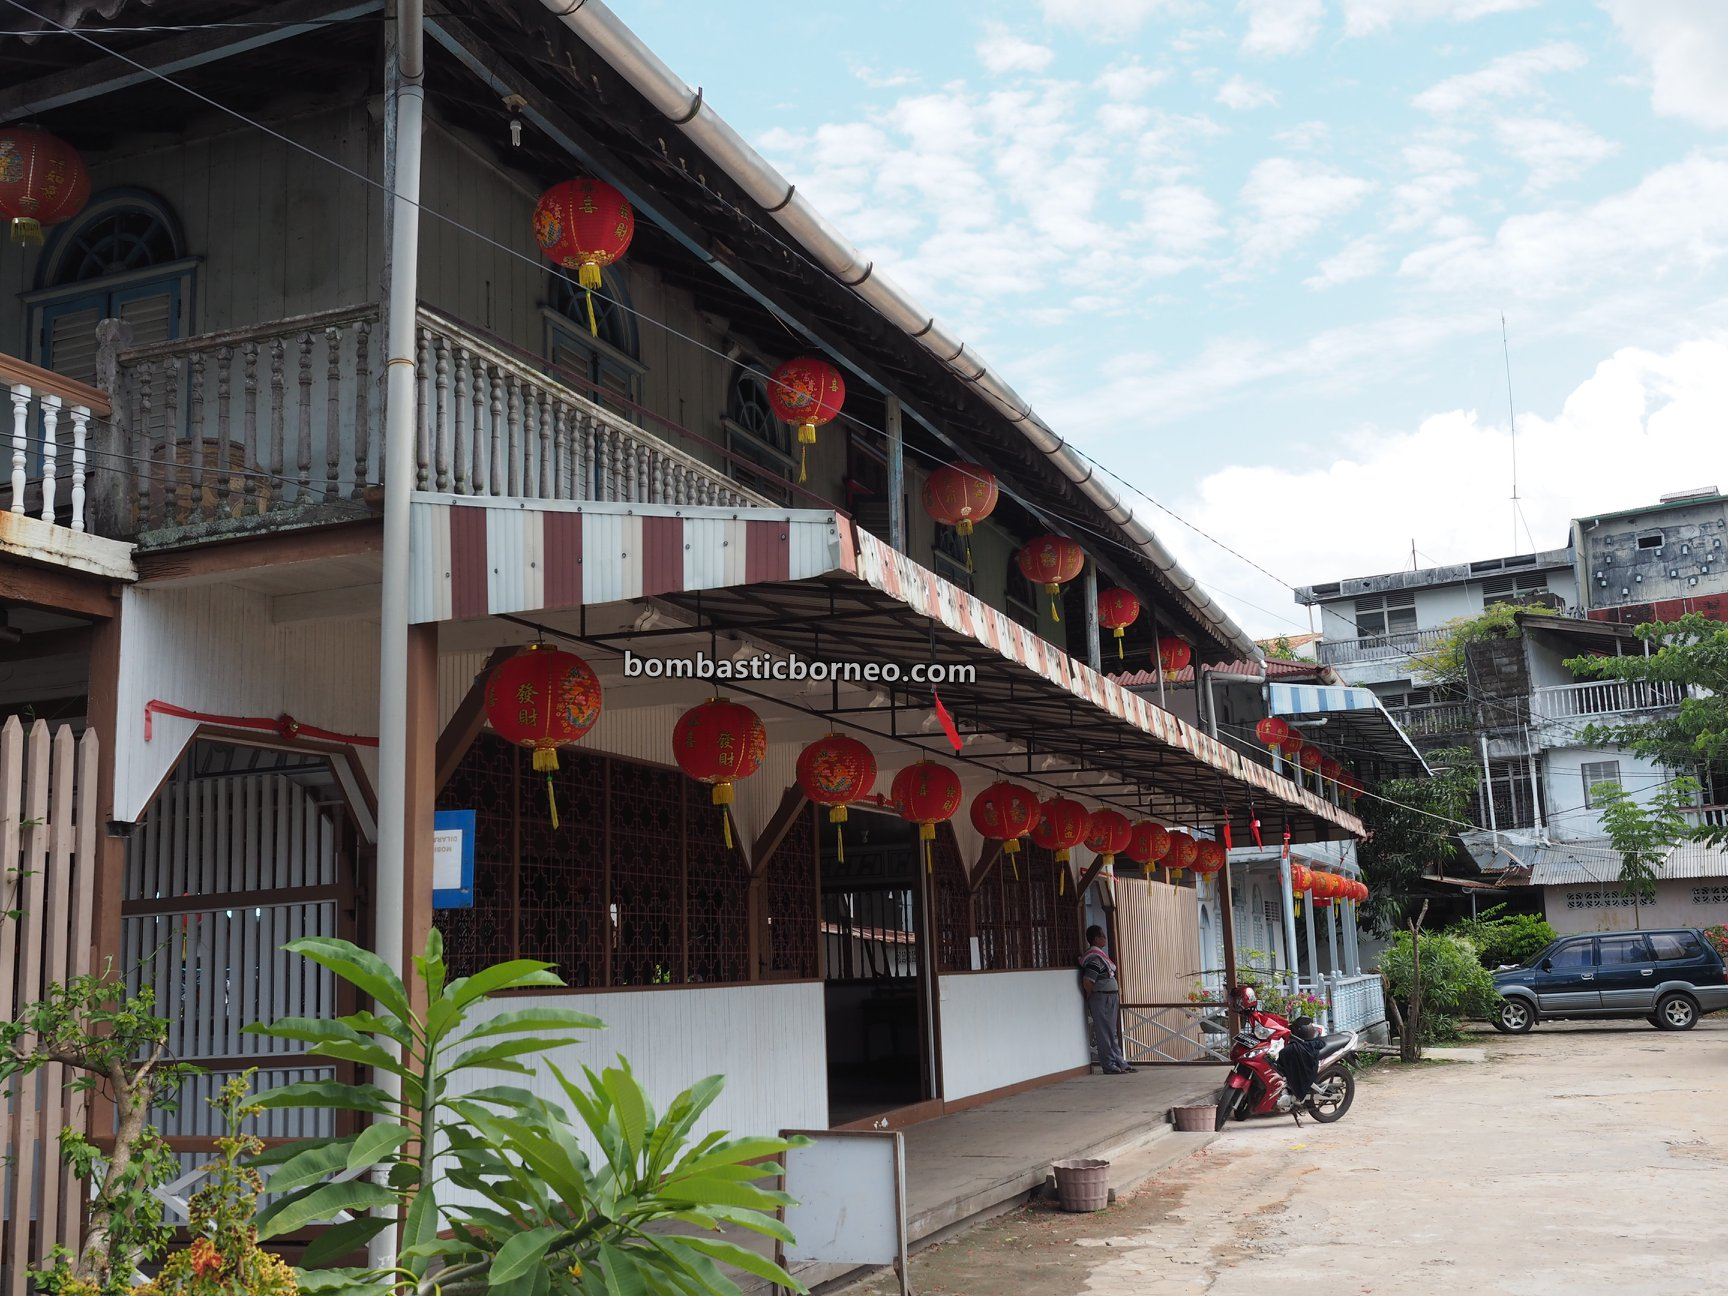 antique, authentic, tradisional, heritage, museum, destination, Indonesia, West Kalimantan, Tourism, tourist attraction, Travel Guide, Borneo, 探索婆罗洲游踪, 印尼西加里曼丹, 山口洋旅游景点,